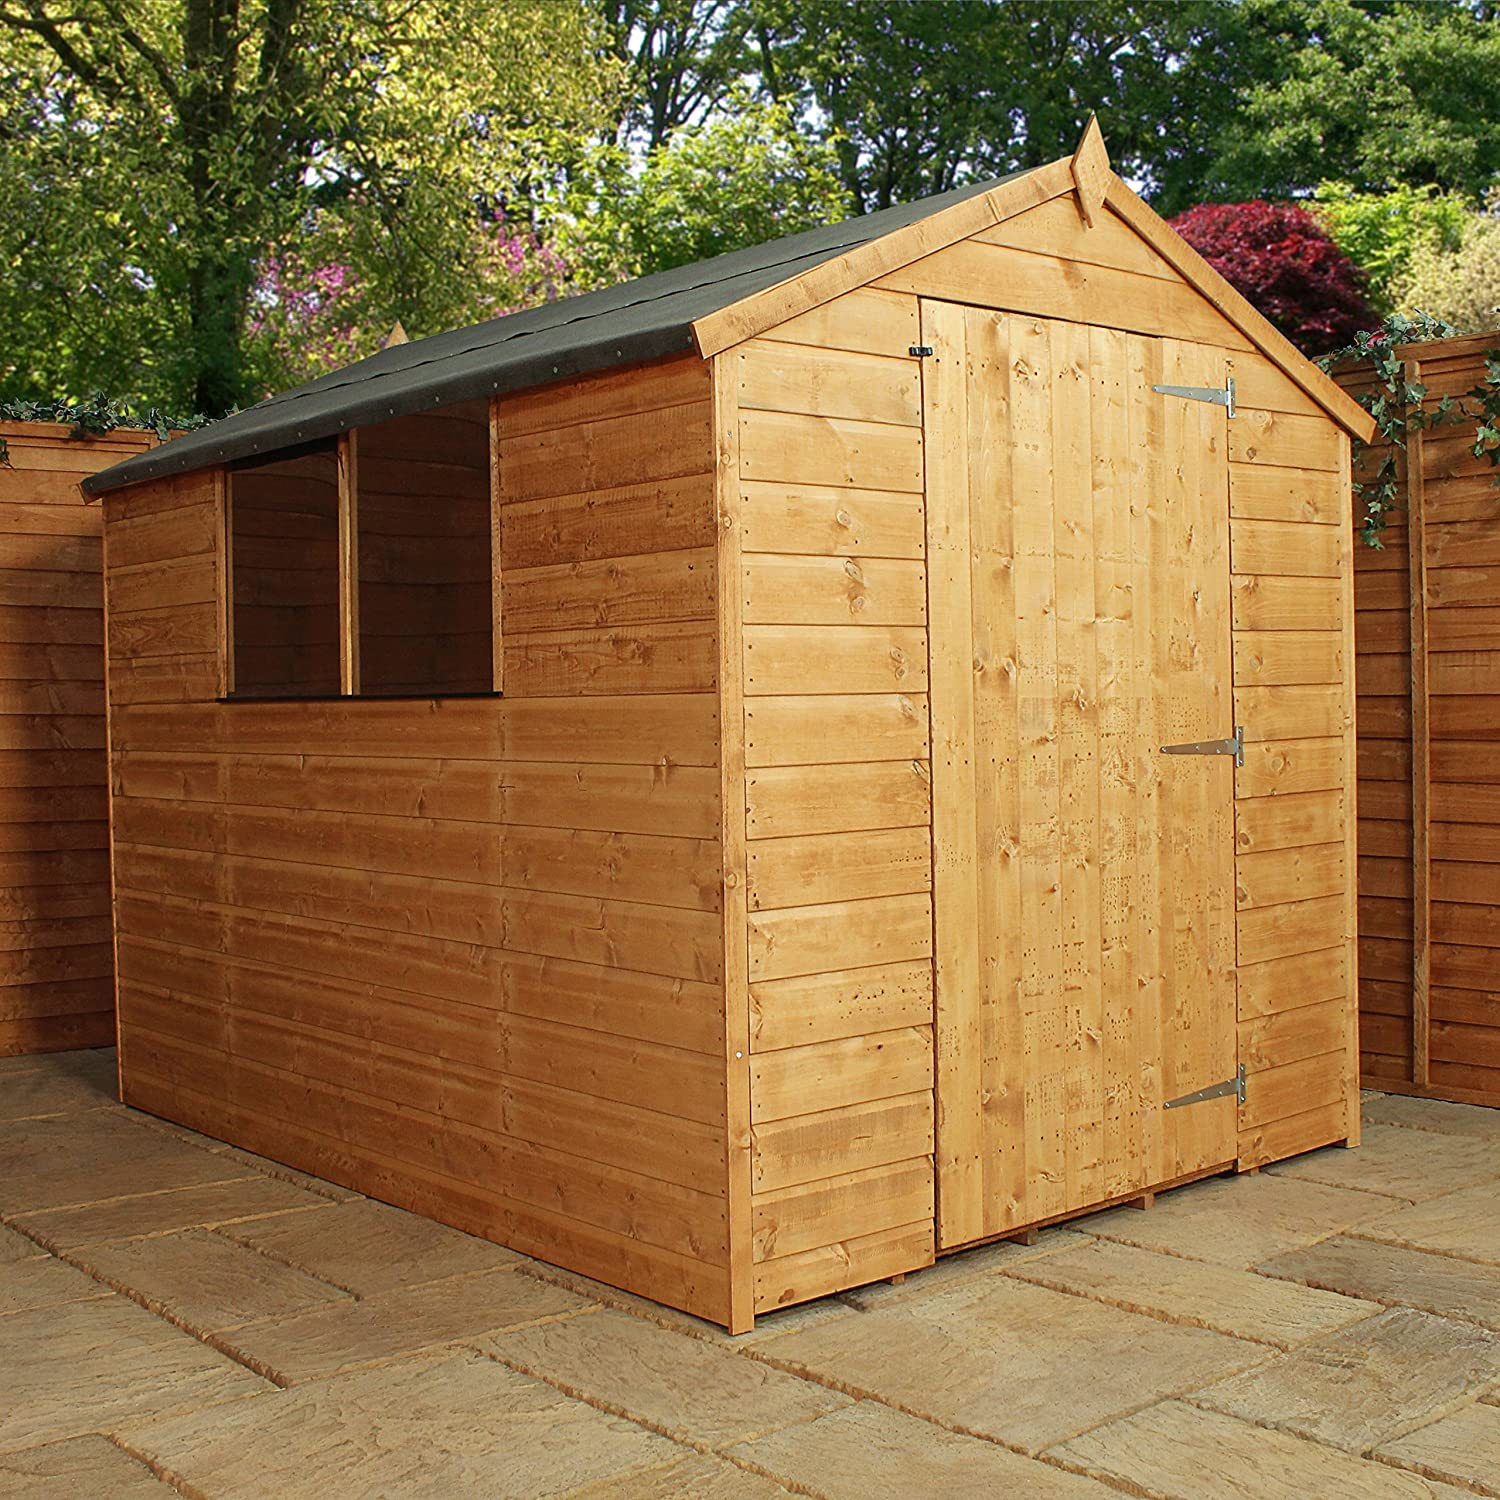 8x6 shiplap wooden apex garden shed large single door felt included by waltons amazoncouk garden outdoors - Garden Sheds Wooden